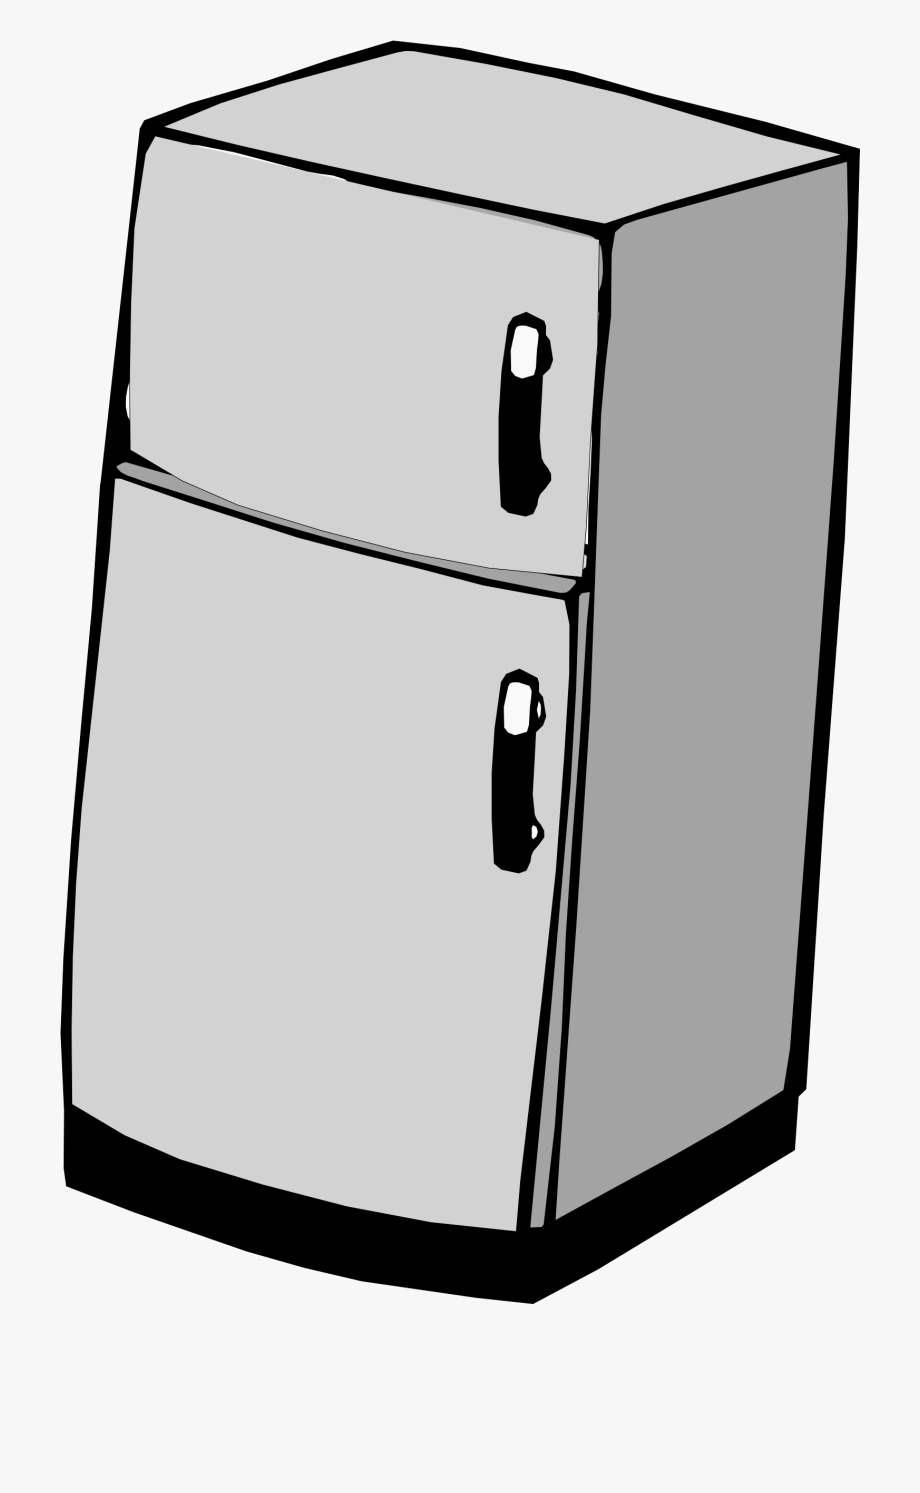 Refrigerator clipart images svg black and white library Refrigerator Clipart, Cliparts & Cartoons - Jing.fm svg black and white library